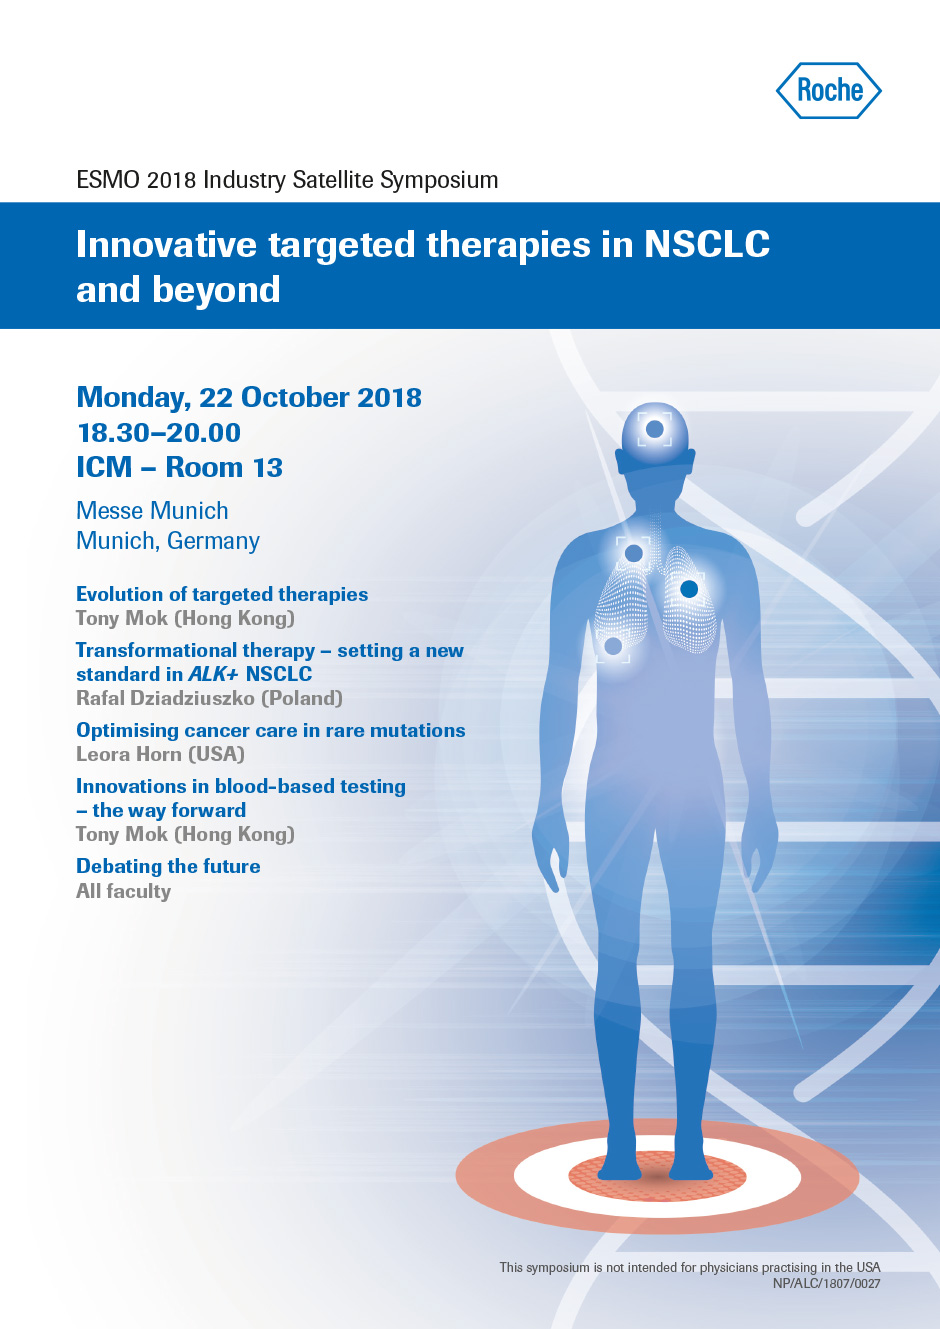 Innovative Targeted Therapies in NSCLC and Beyond